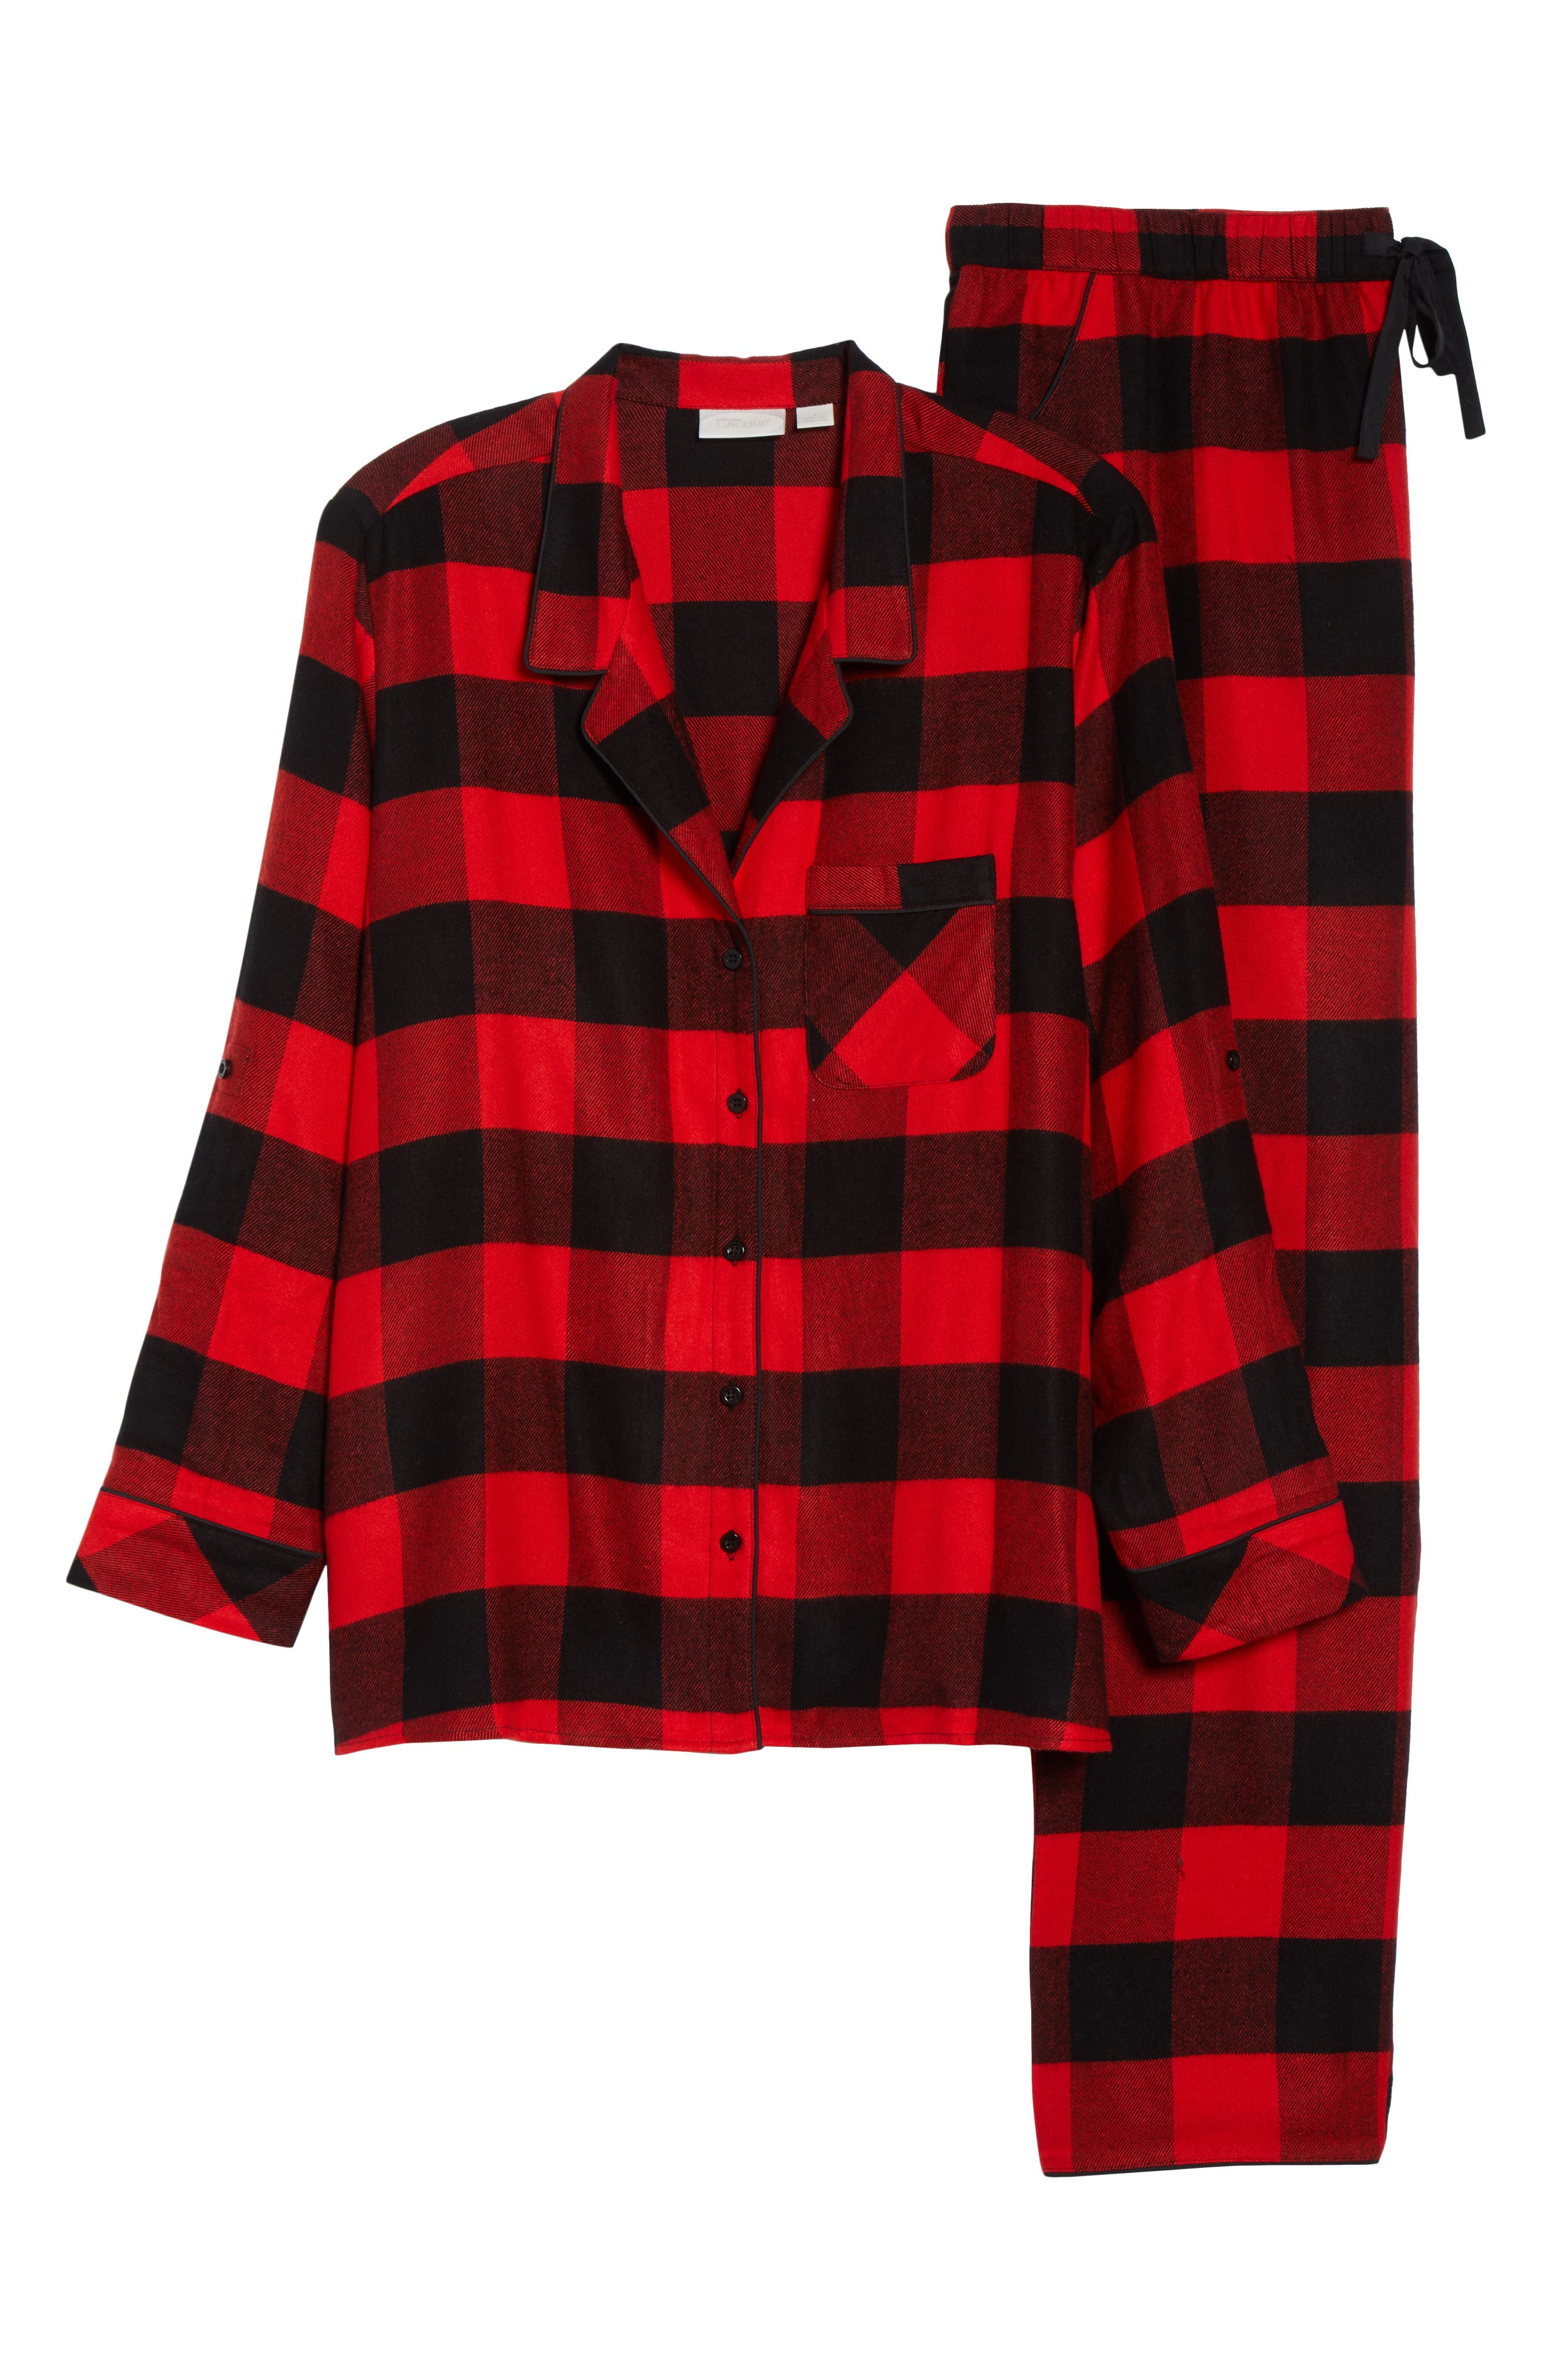 Starlight Plaid Flannel Pajamas,                             Alternate thumbnail 6, color,                             RED BLOOM LARGE BUFFALO CHECK